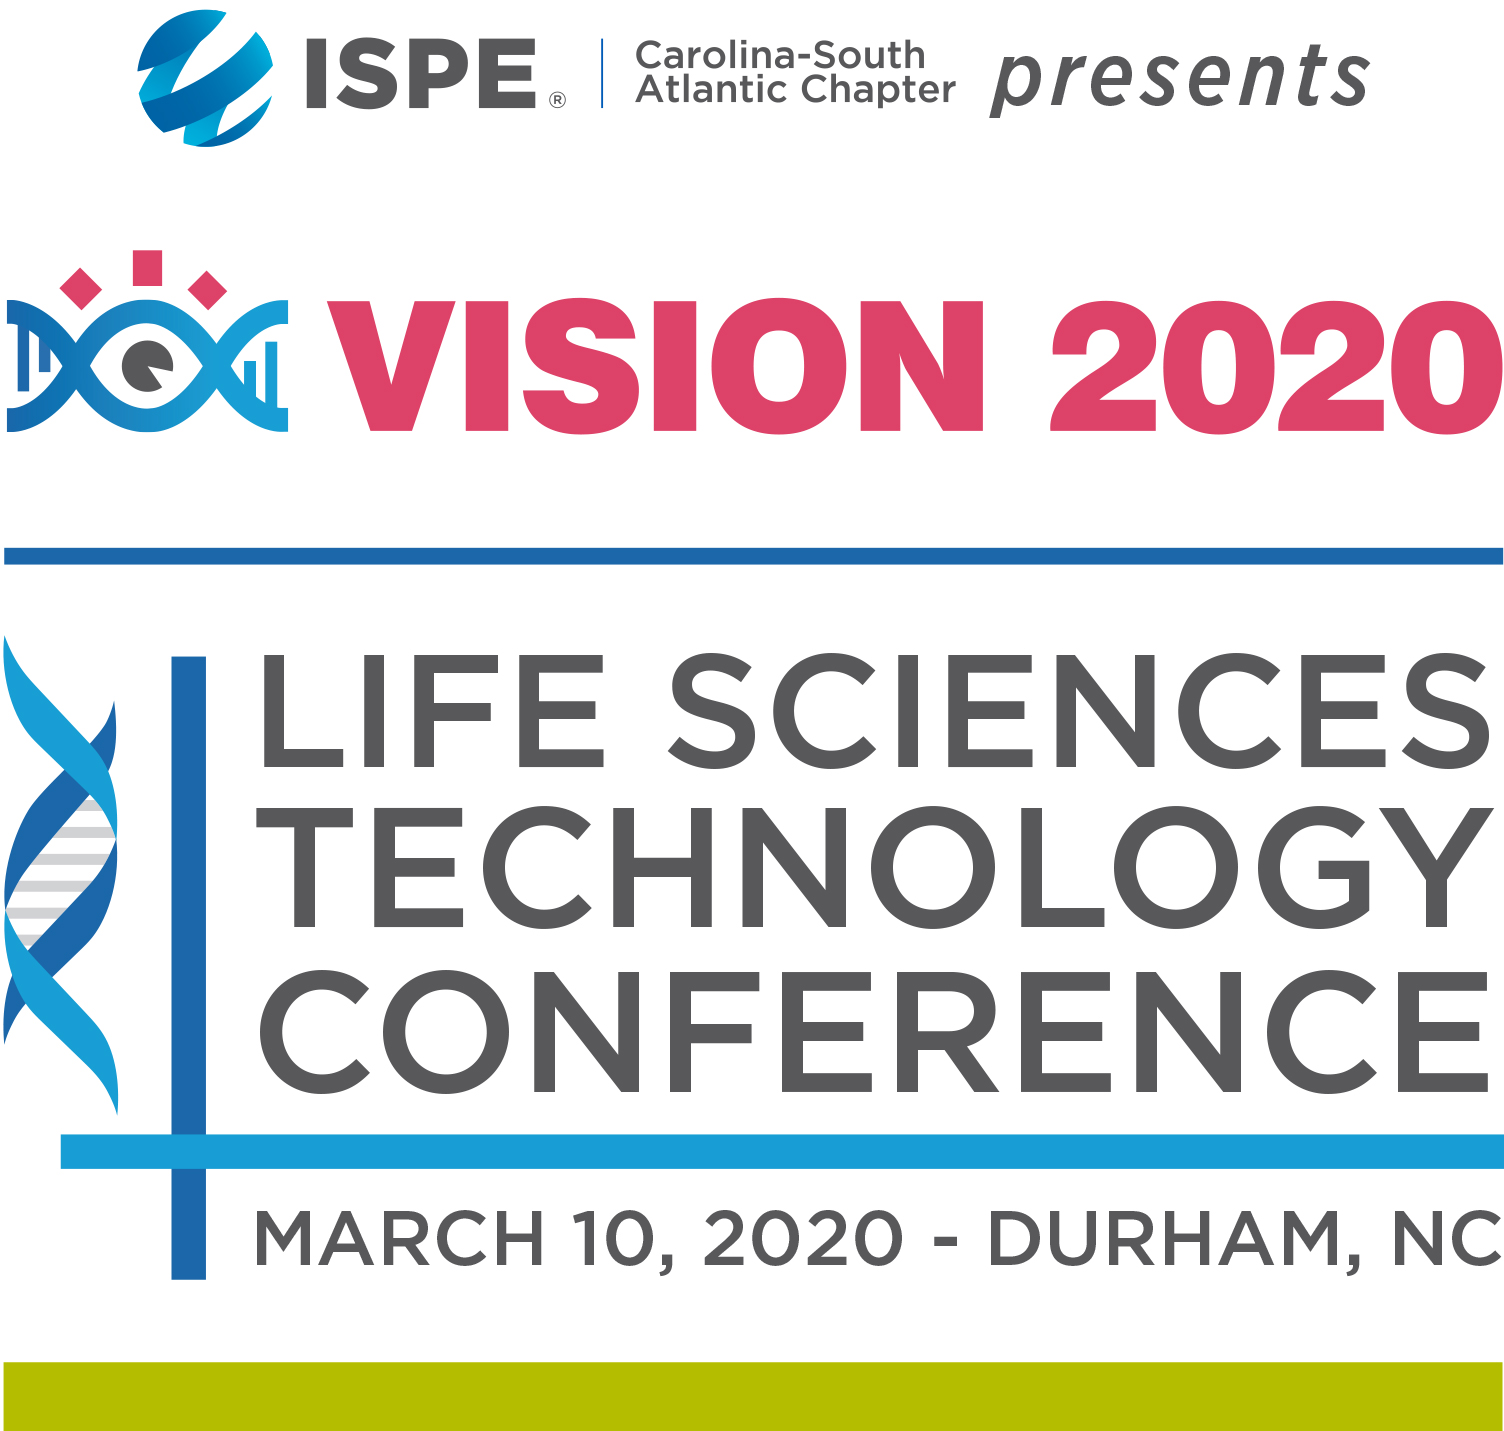 Join Us At The ISPE-CaSA Technology Conference March 10, 2020